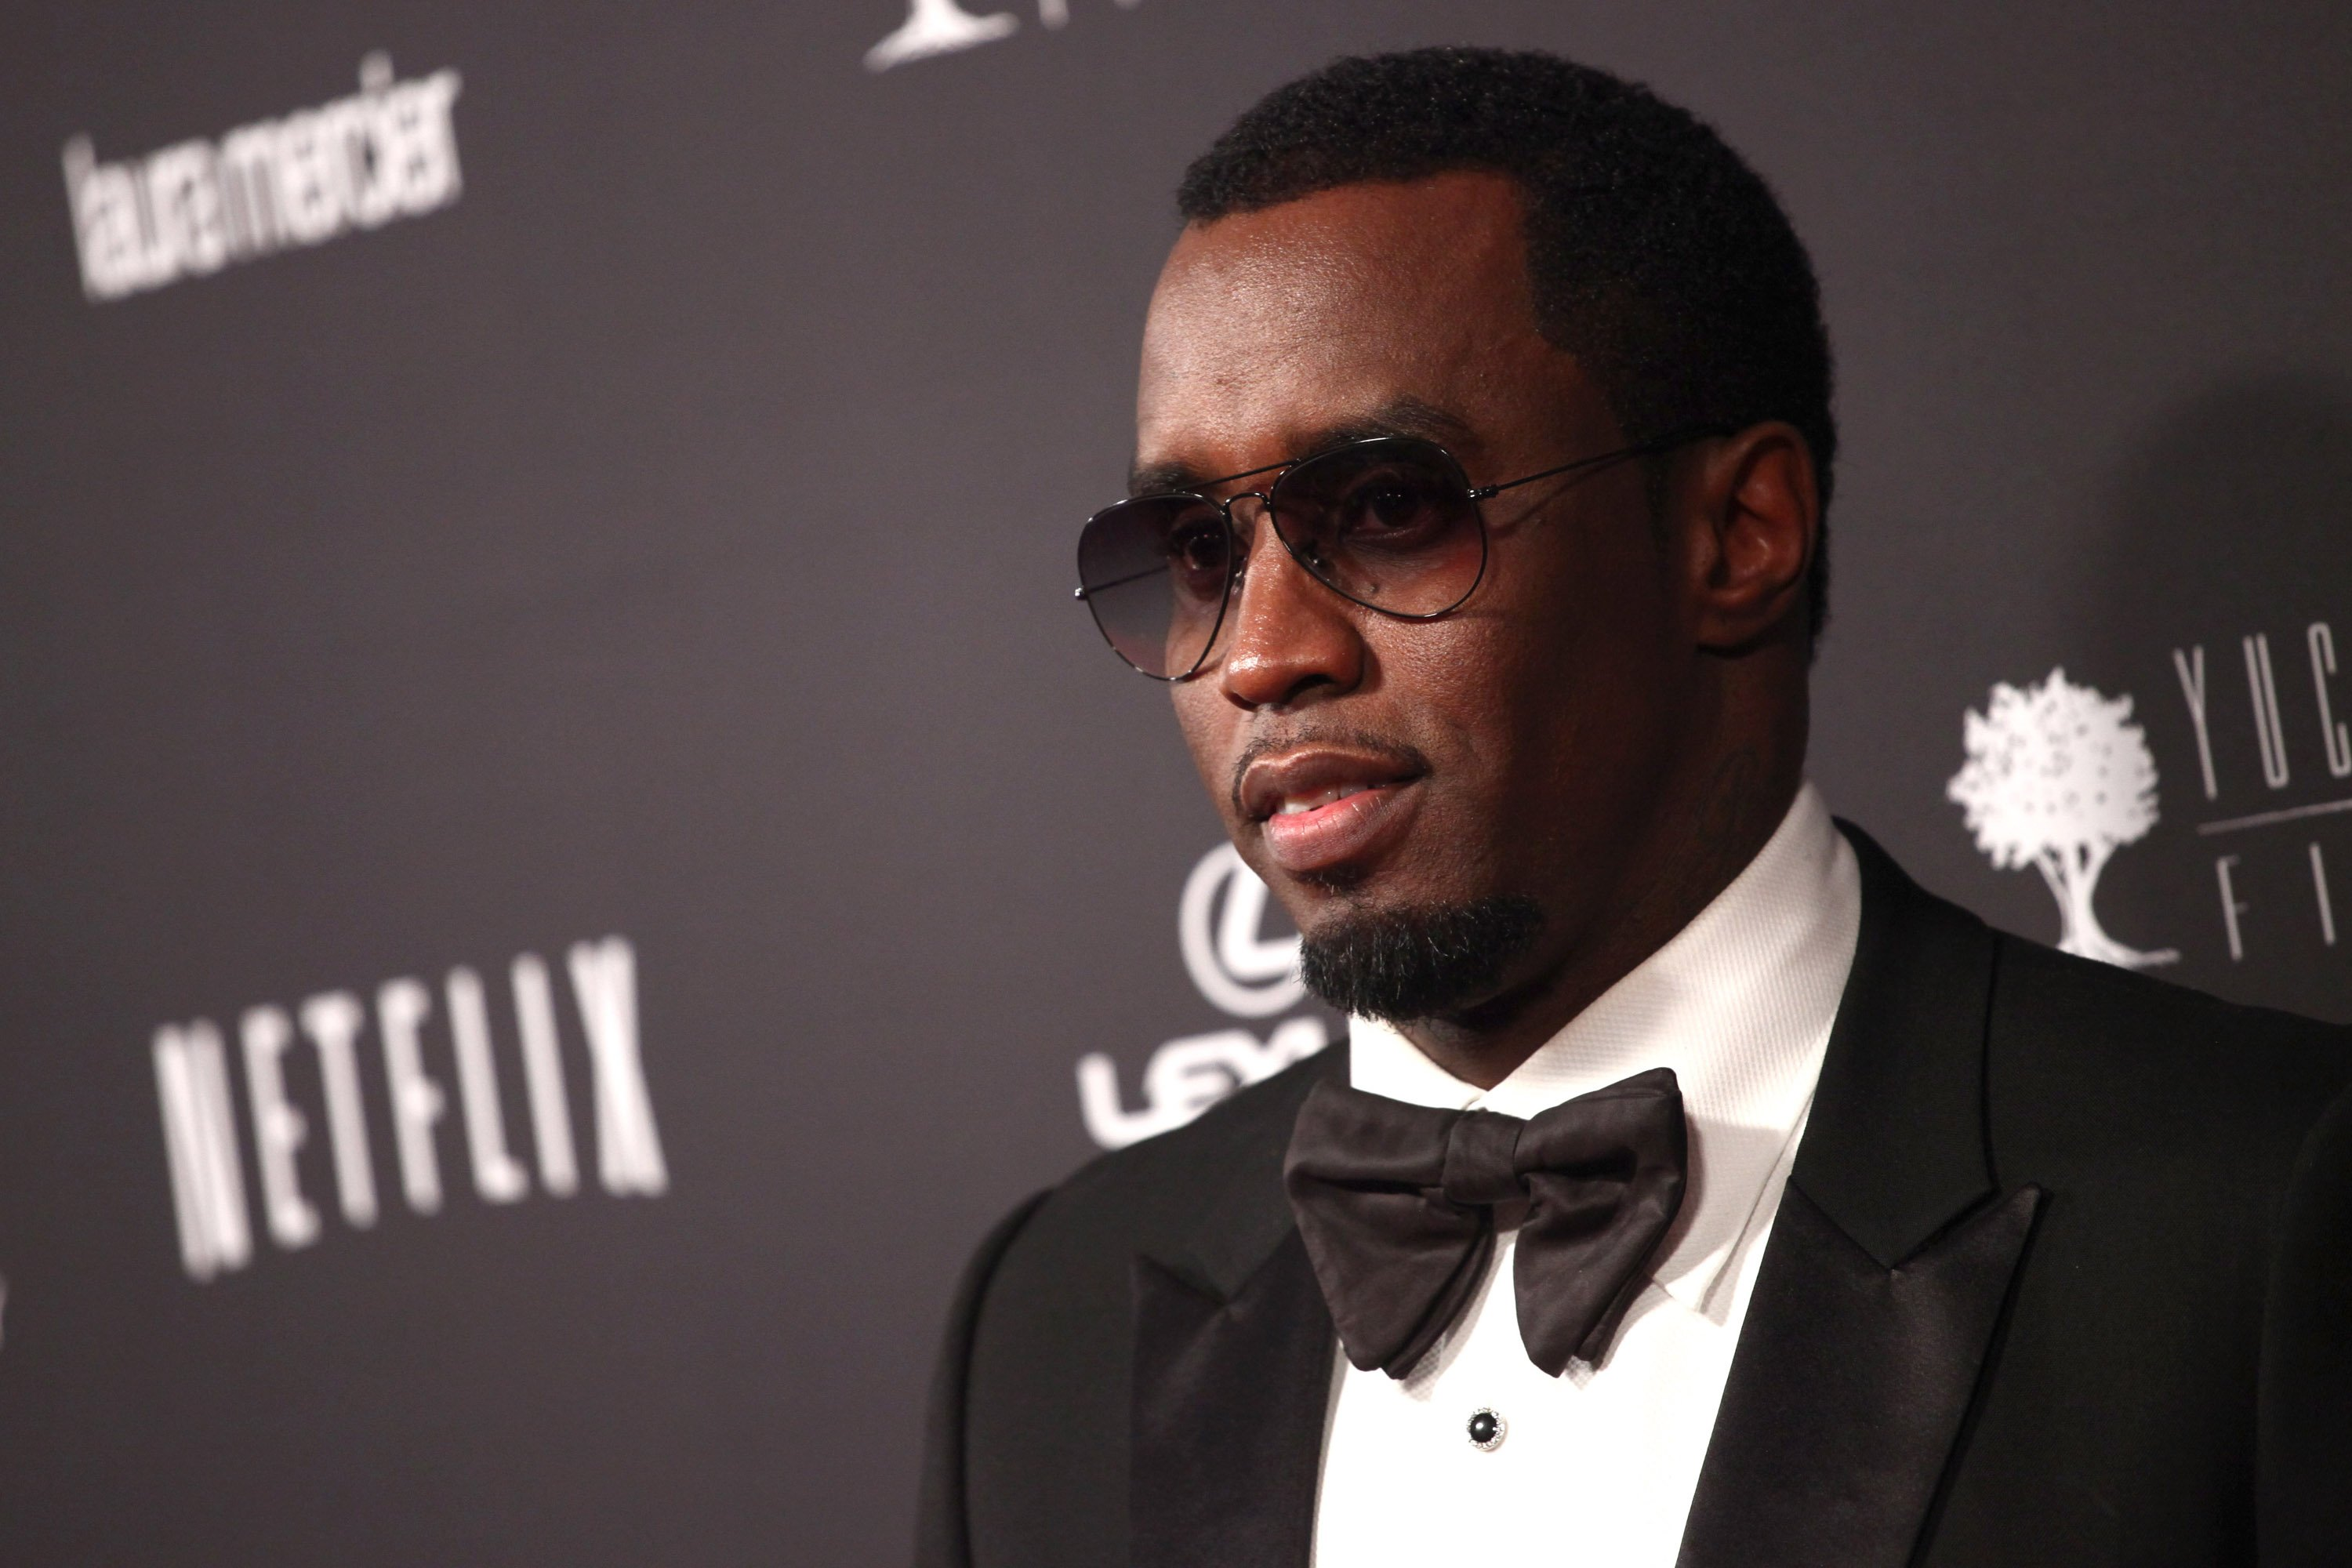 """Sean """"Diddy"""" Combs attends The Weinstein Company & Netflix's 2014 Golden Globes After Party at The Beverly Hilton Hotel on January 12, 2014 in California. 